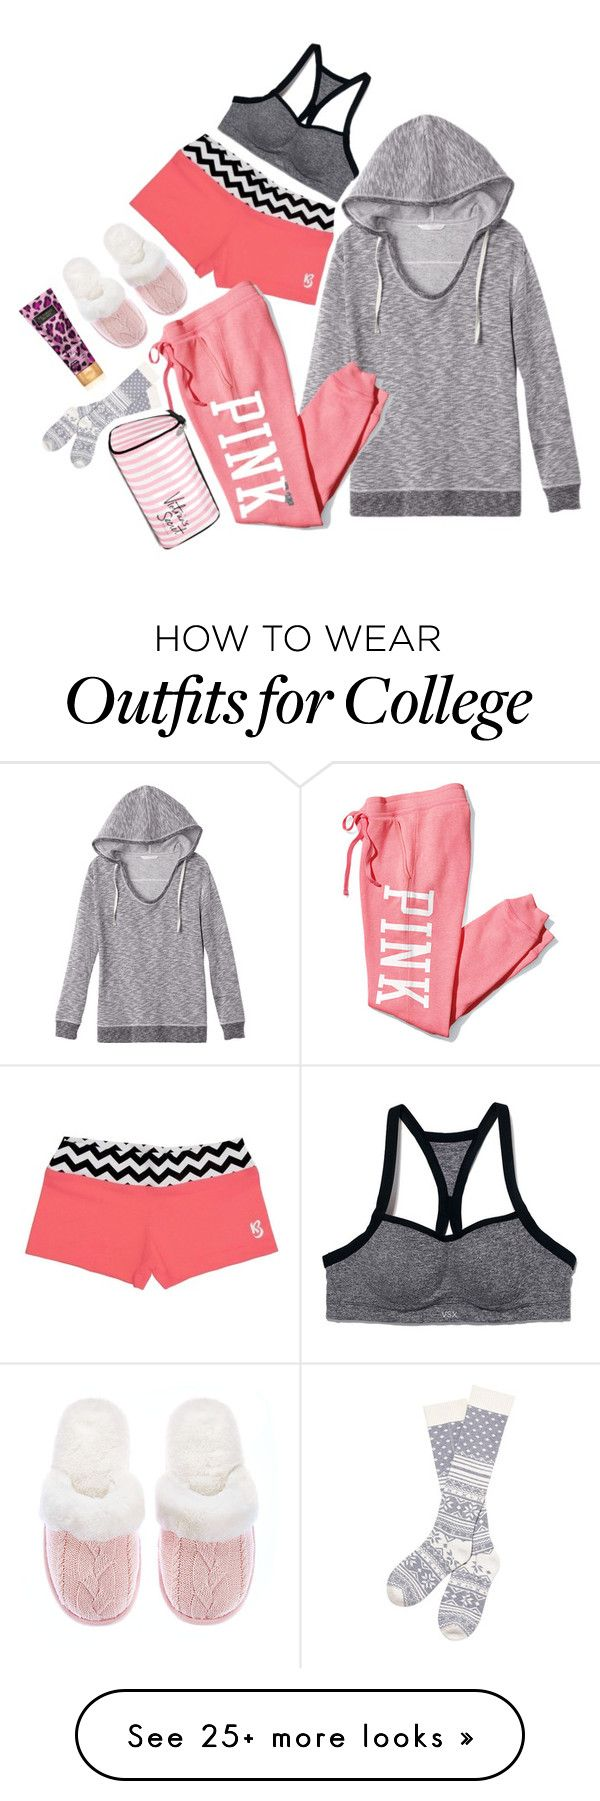 """pink"" by adele-adik on Polyvore featuring Victoria's Secret and Victoria's Secret PINK"